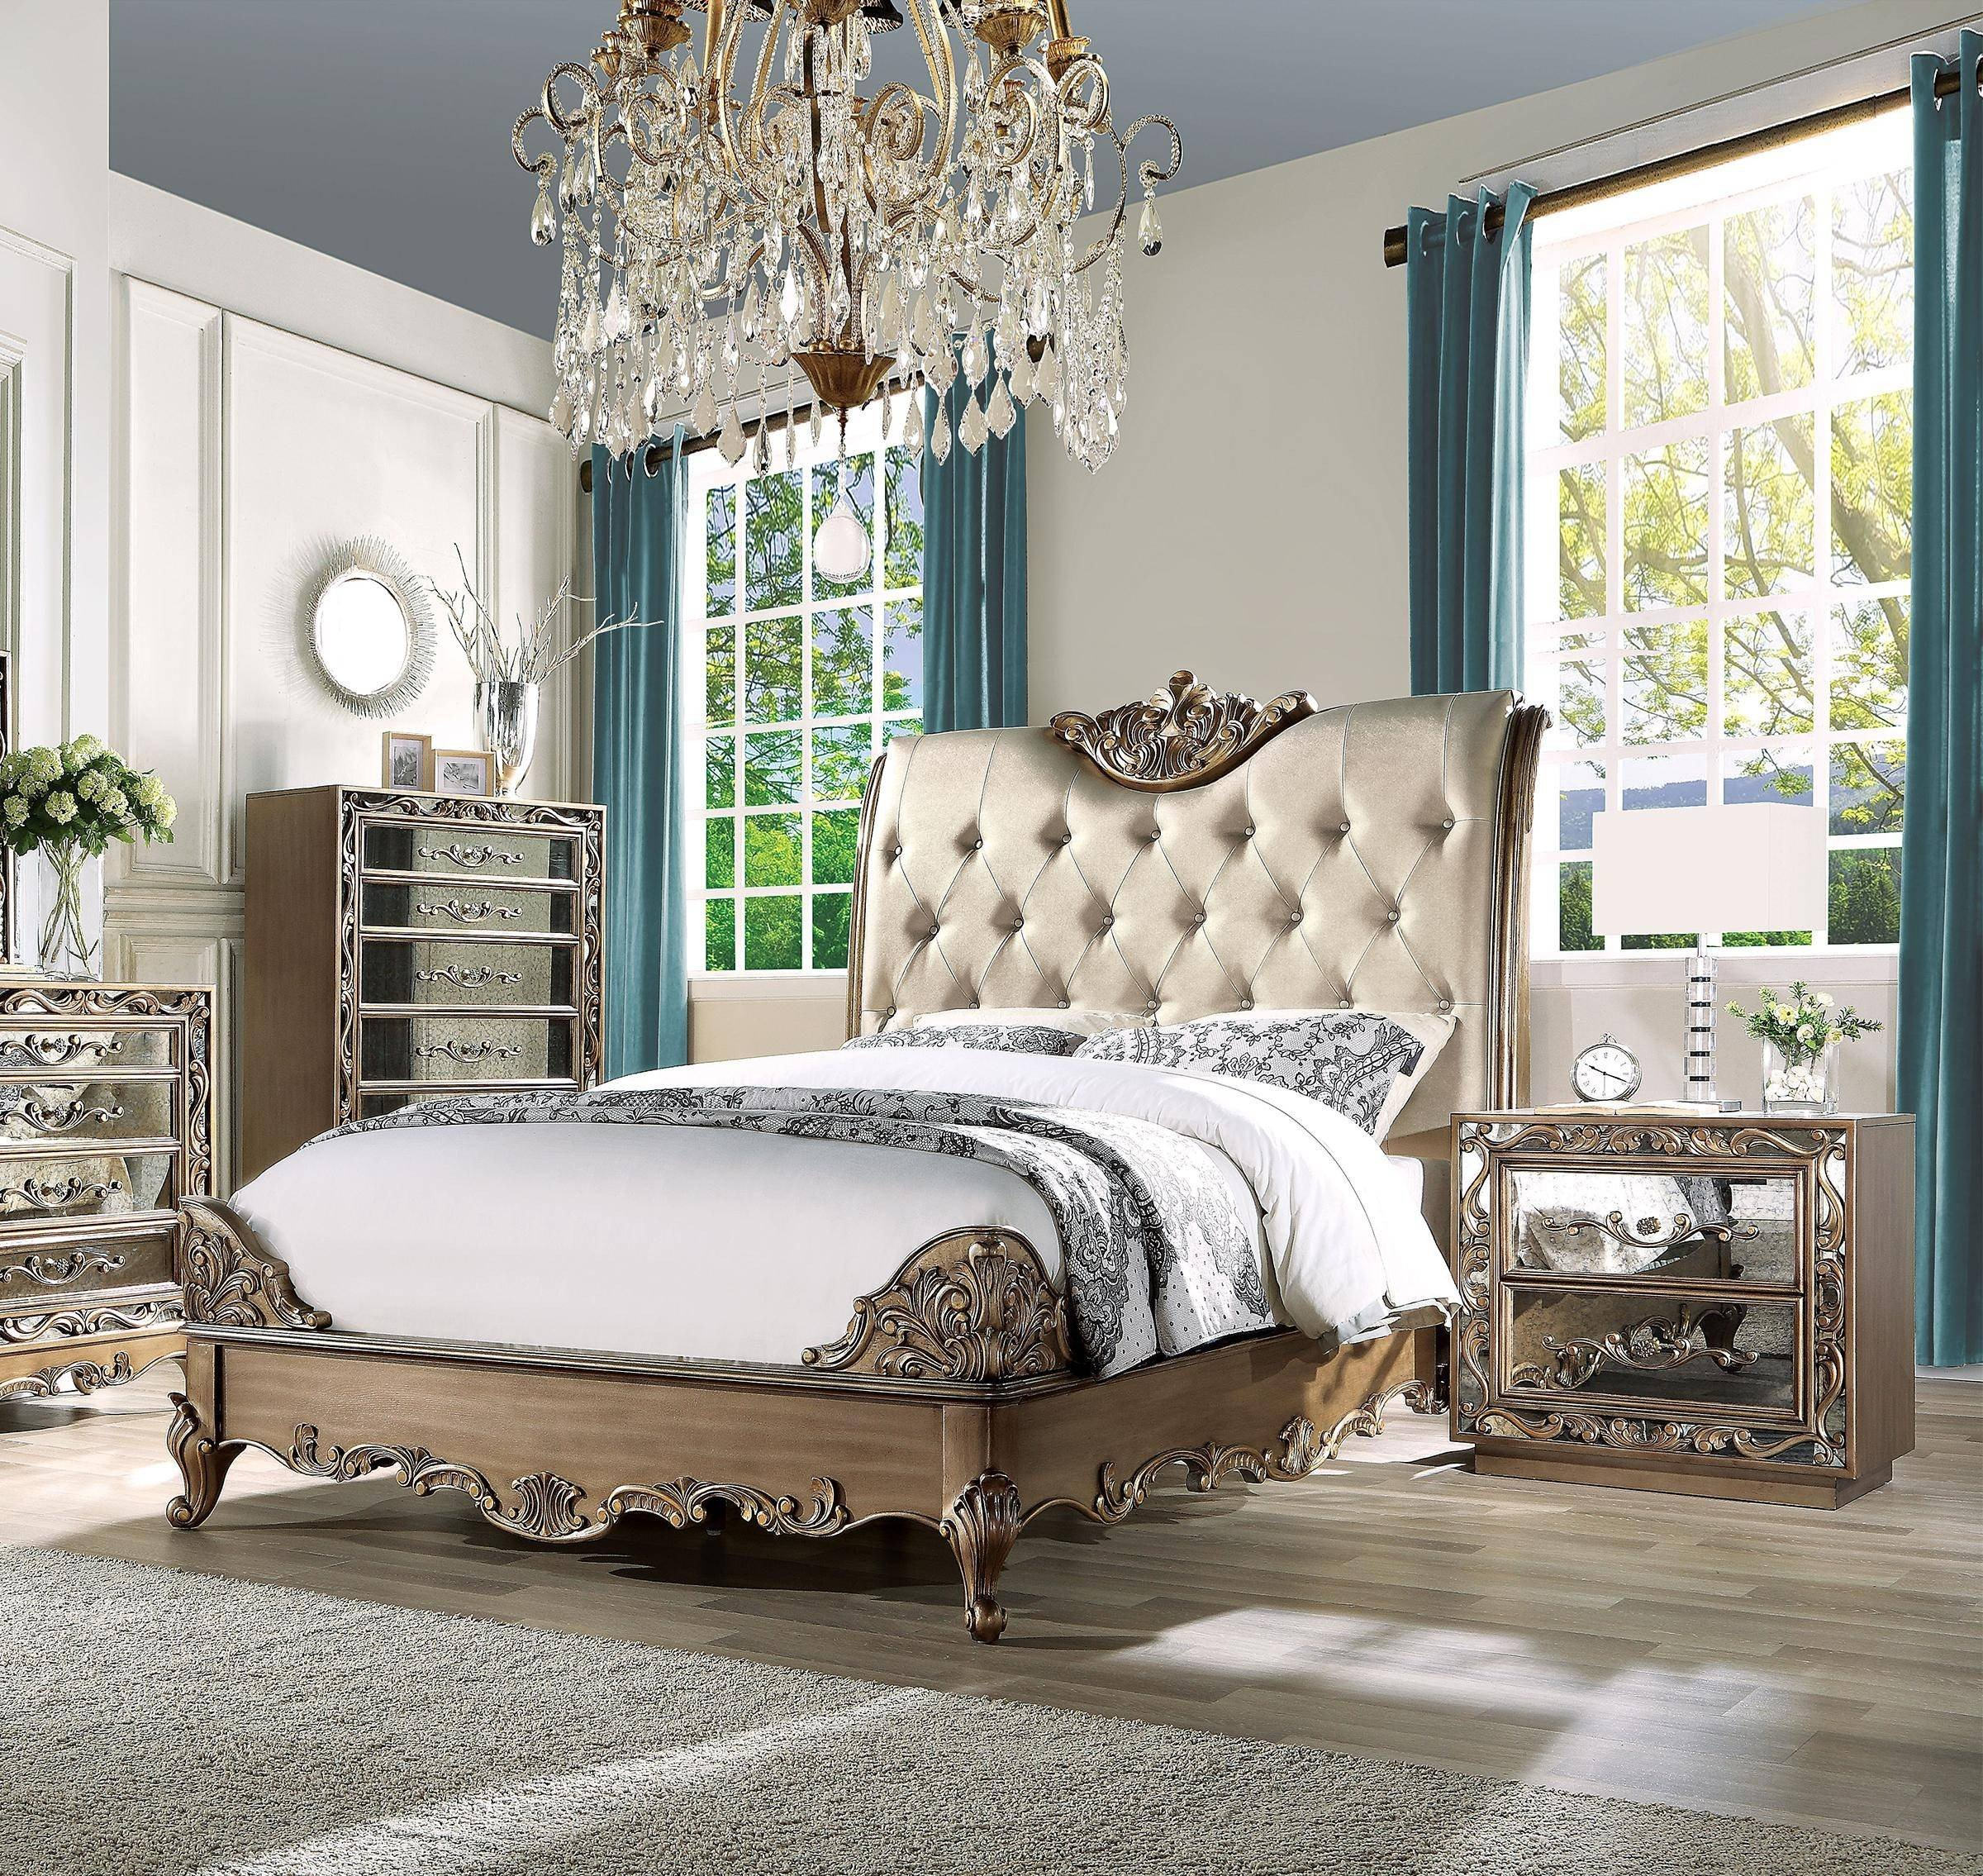 Off White Bedroom Furniture Fresh Luxury King Bedroom Set 3 Antique Gold Champagne F Leather